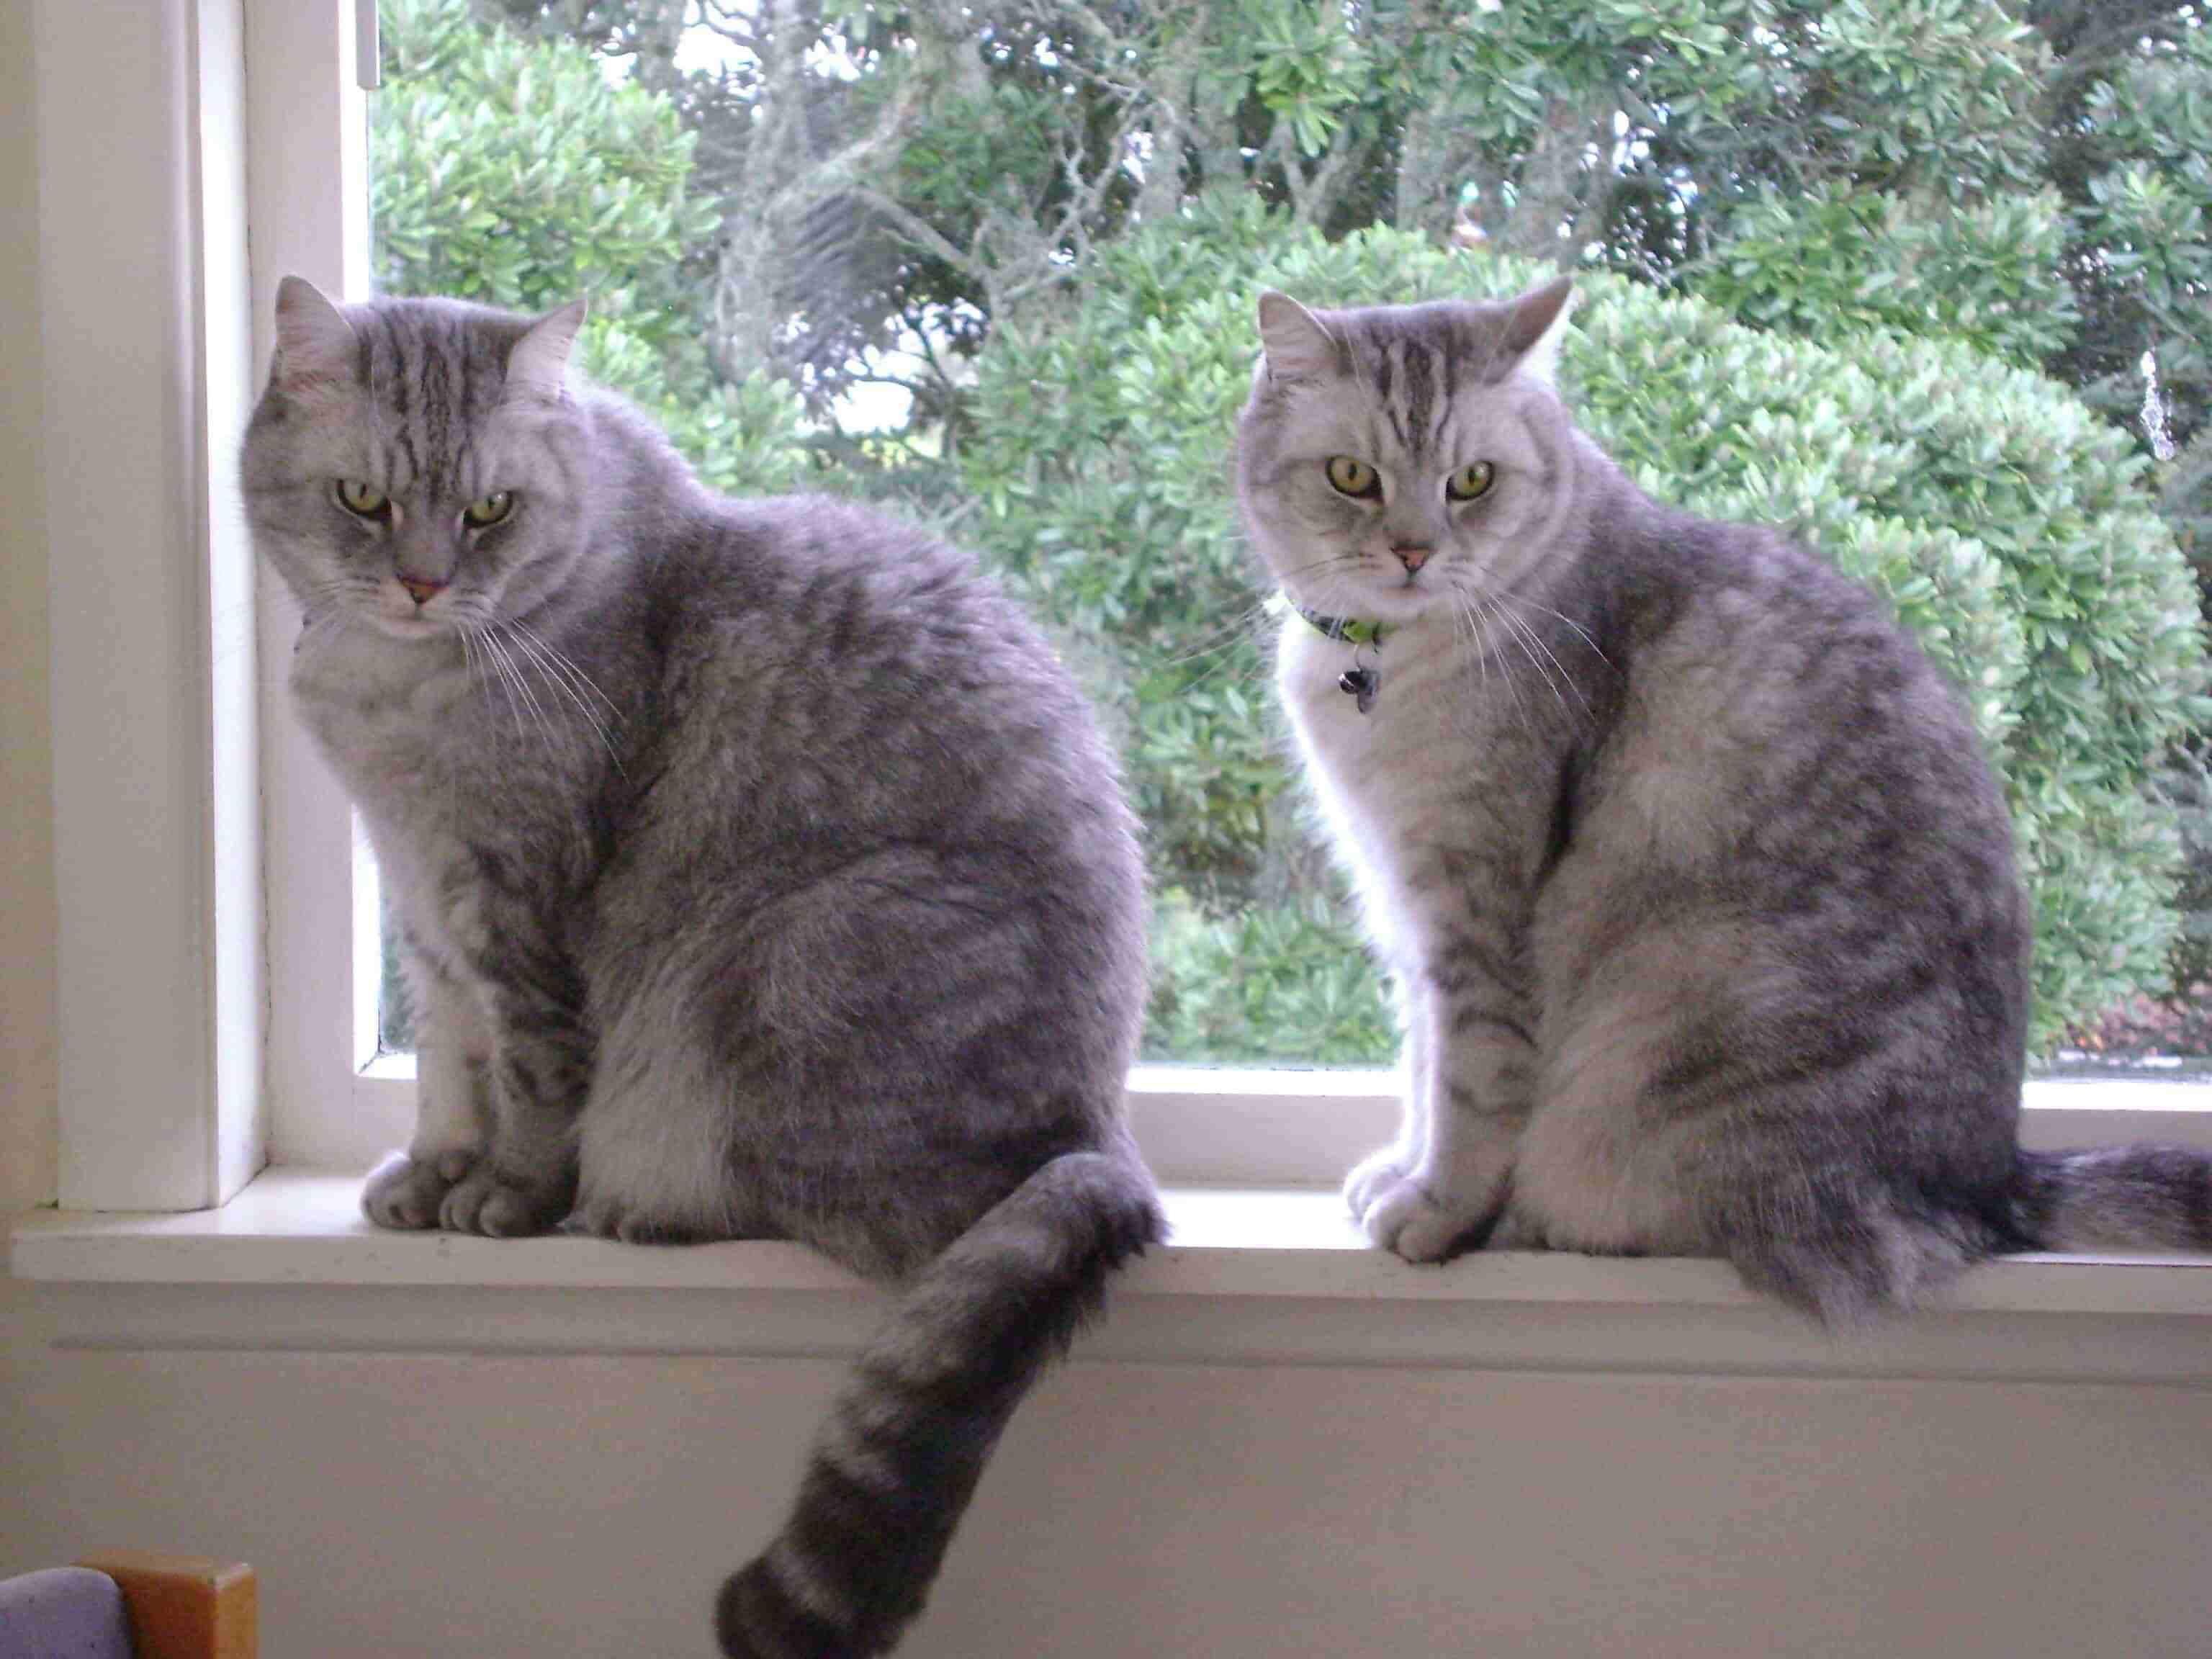 Two Gray Cats Image